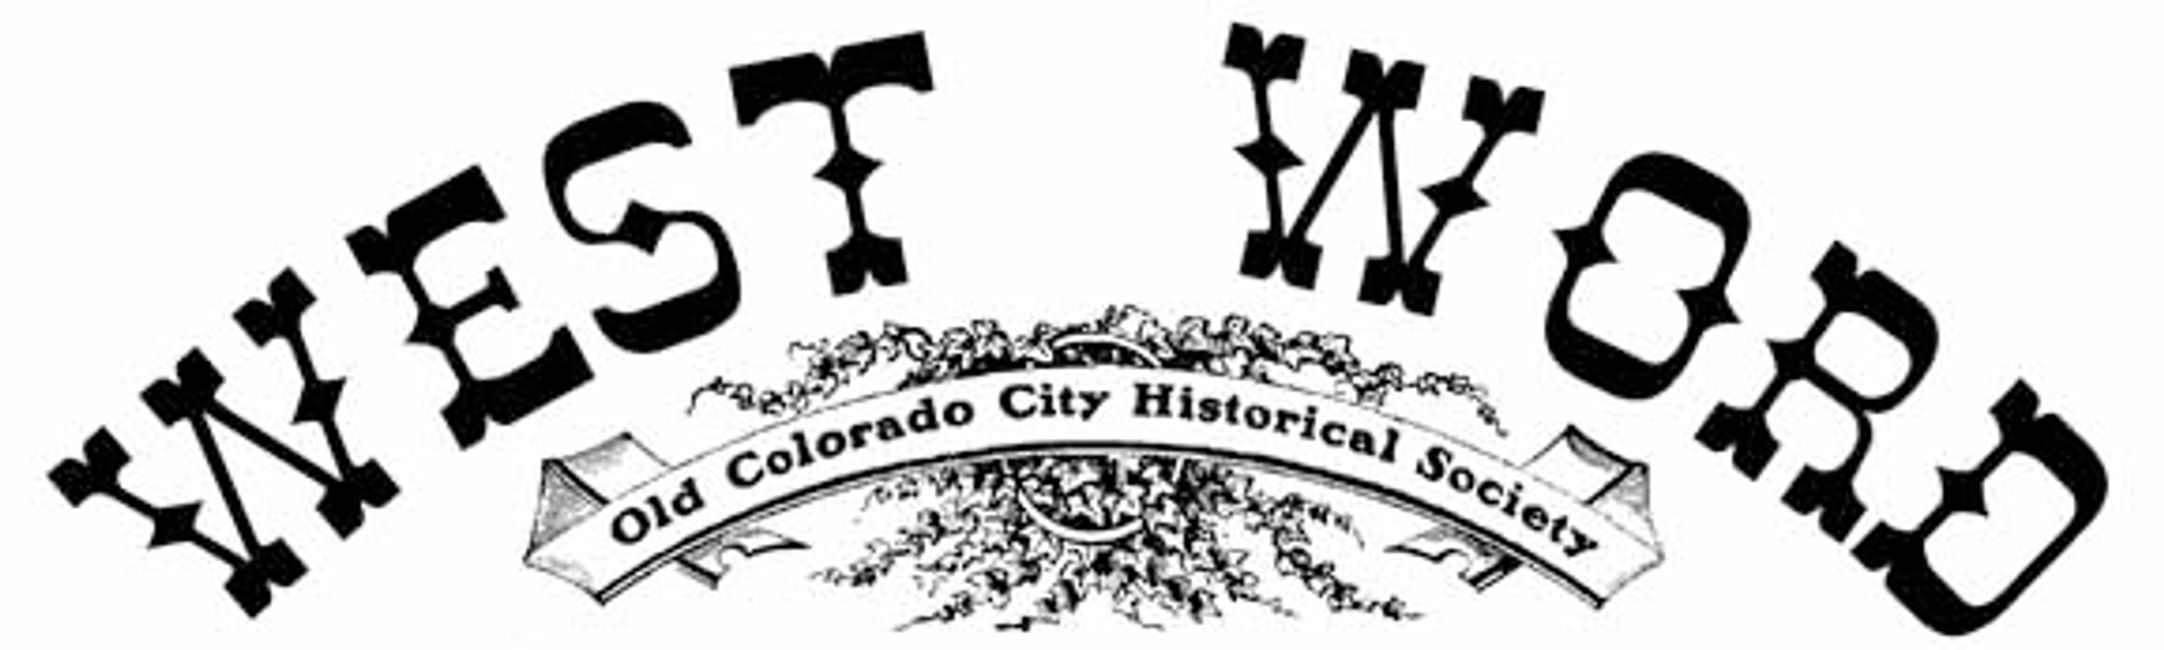 West Word  Old Colorado City Historical Society Newsletter